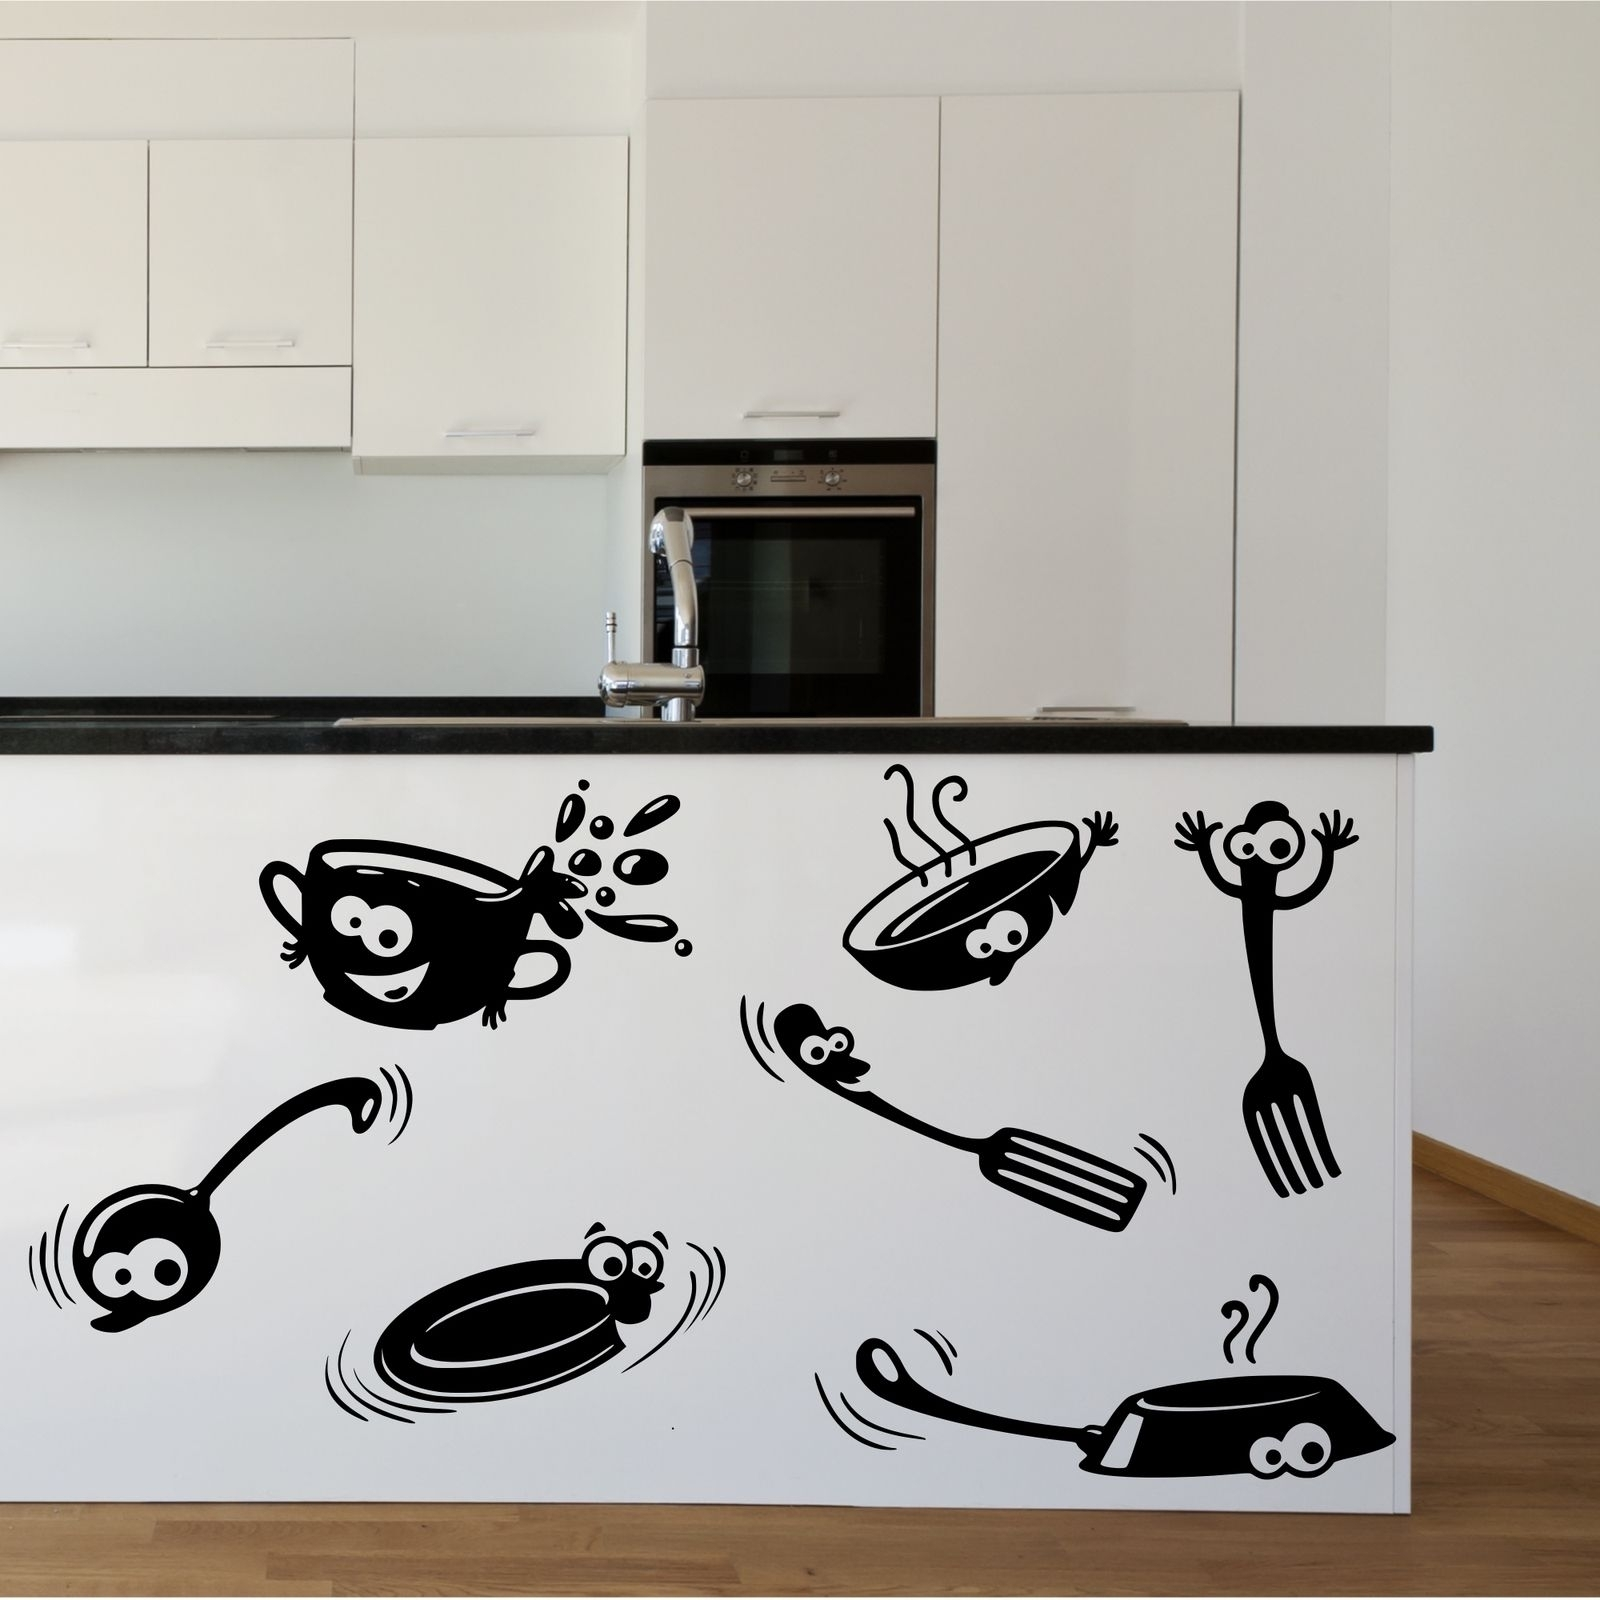 Kitchen Cupboard Cartoon Stickers Vinyl Wall Art Decal Transfer Inside Latest Stencil Wall Art (Gallery 17 of 20)